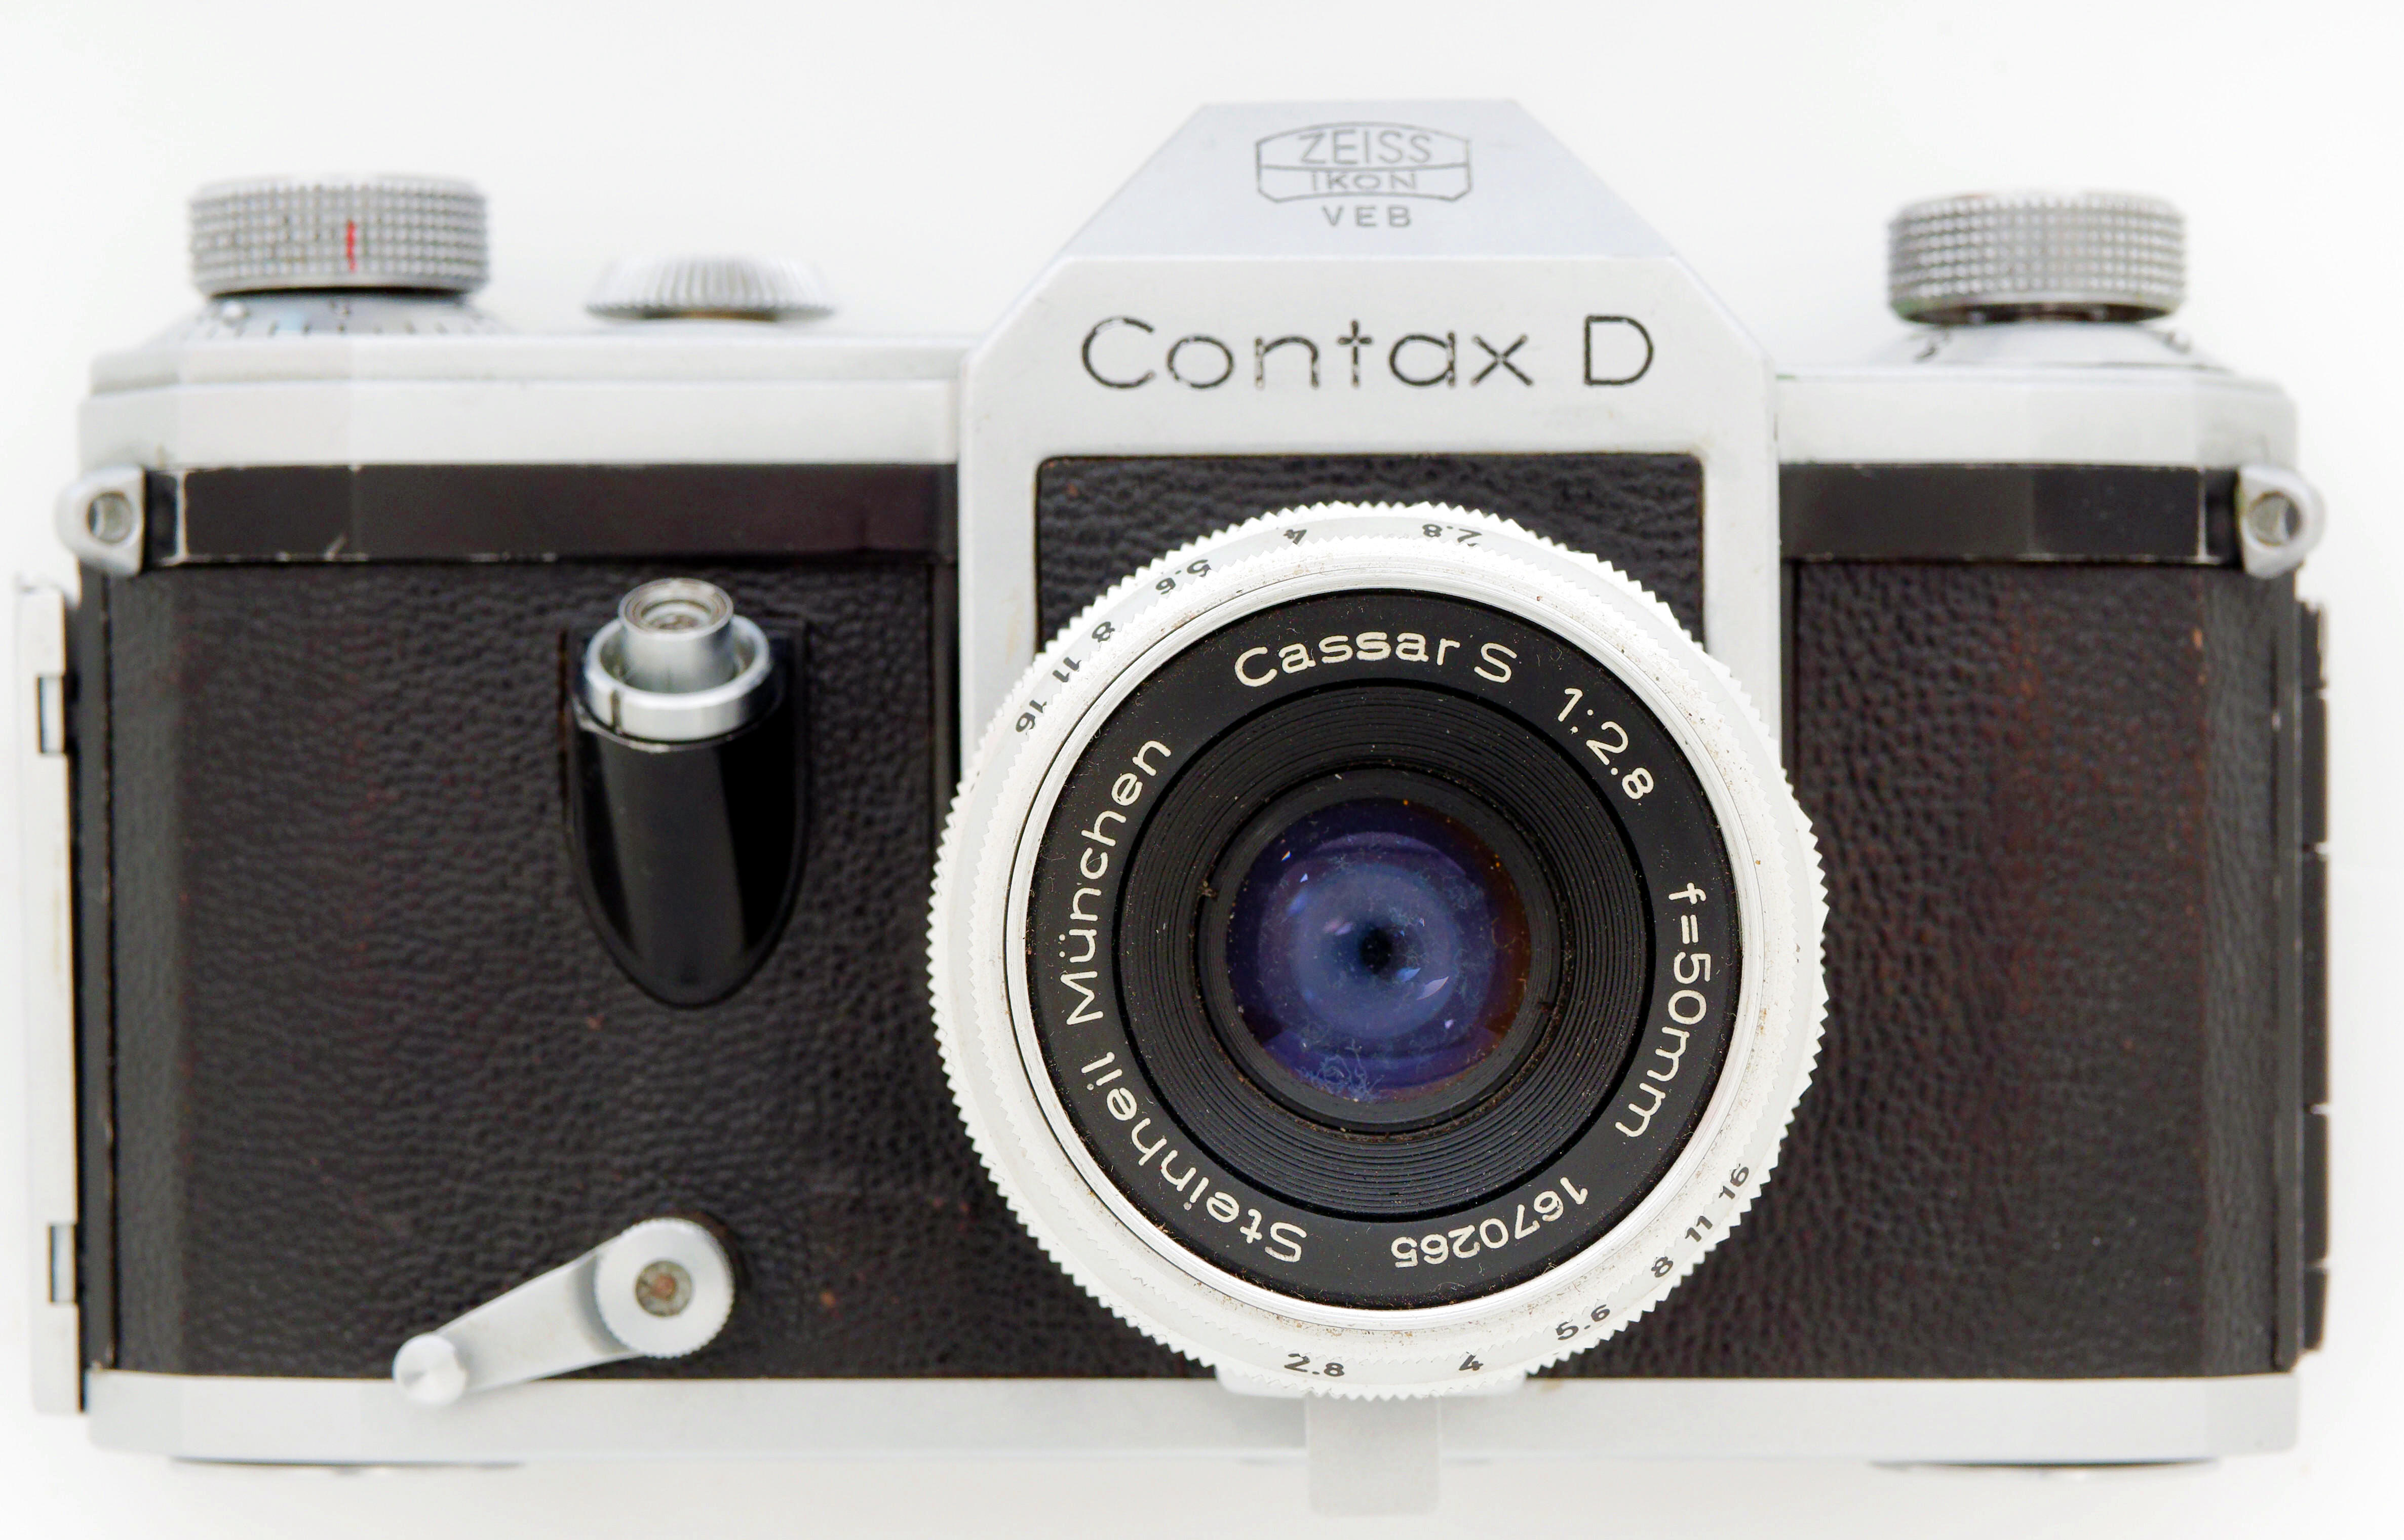 This should be Contax-D-2.jpeg.  Is it missing?